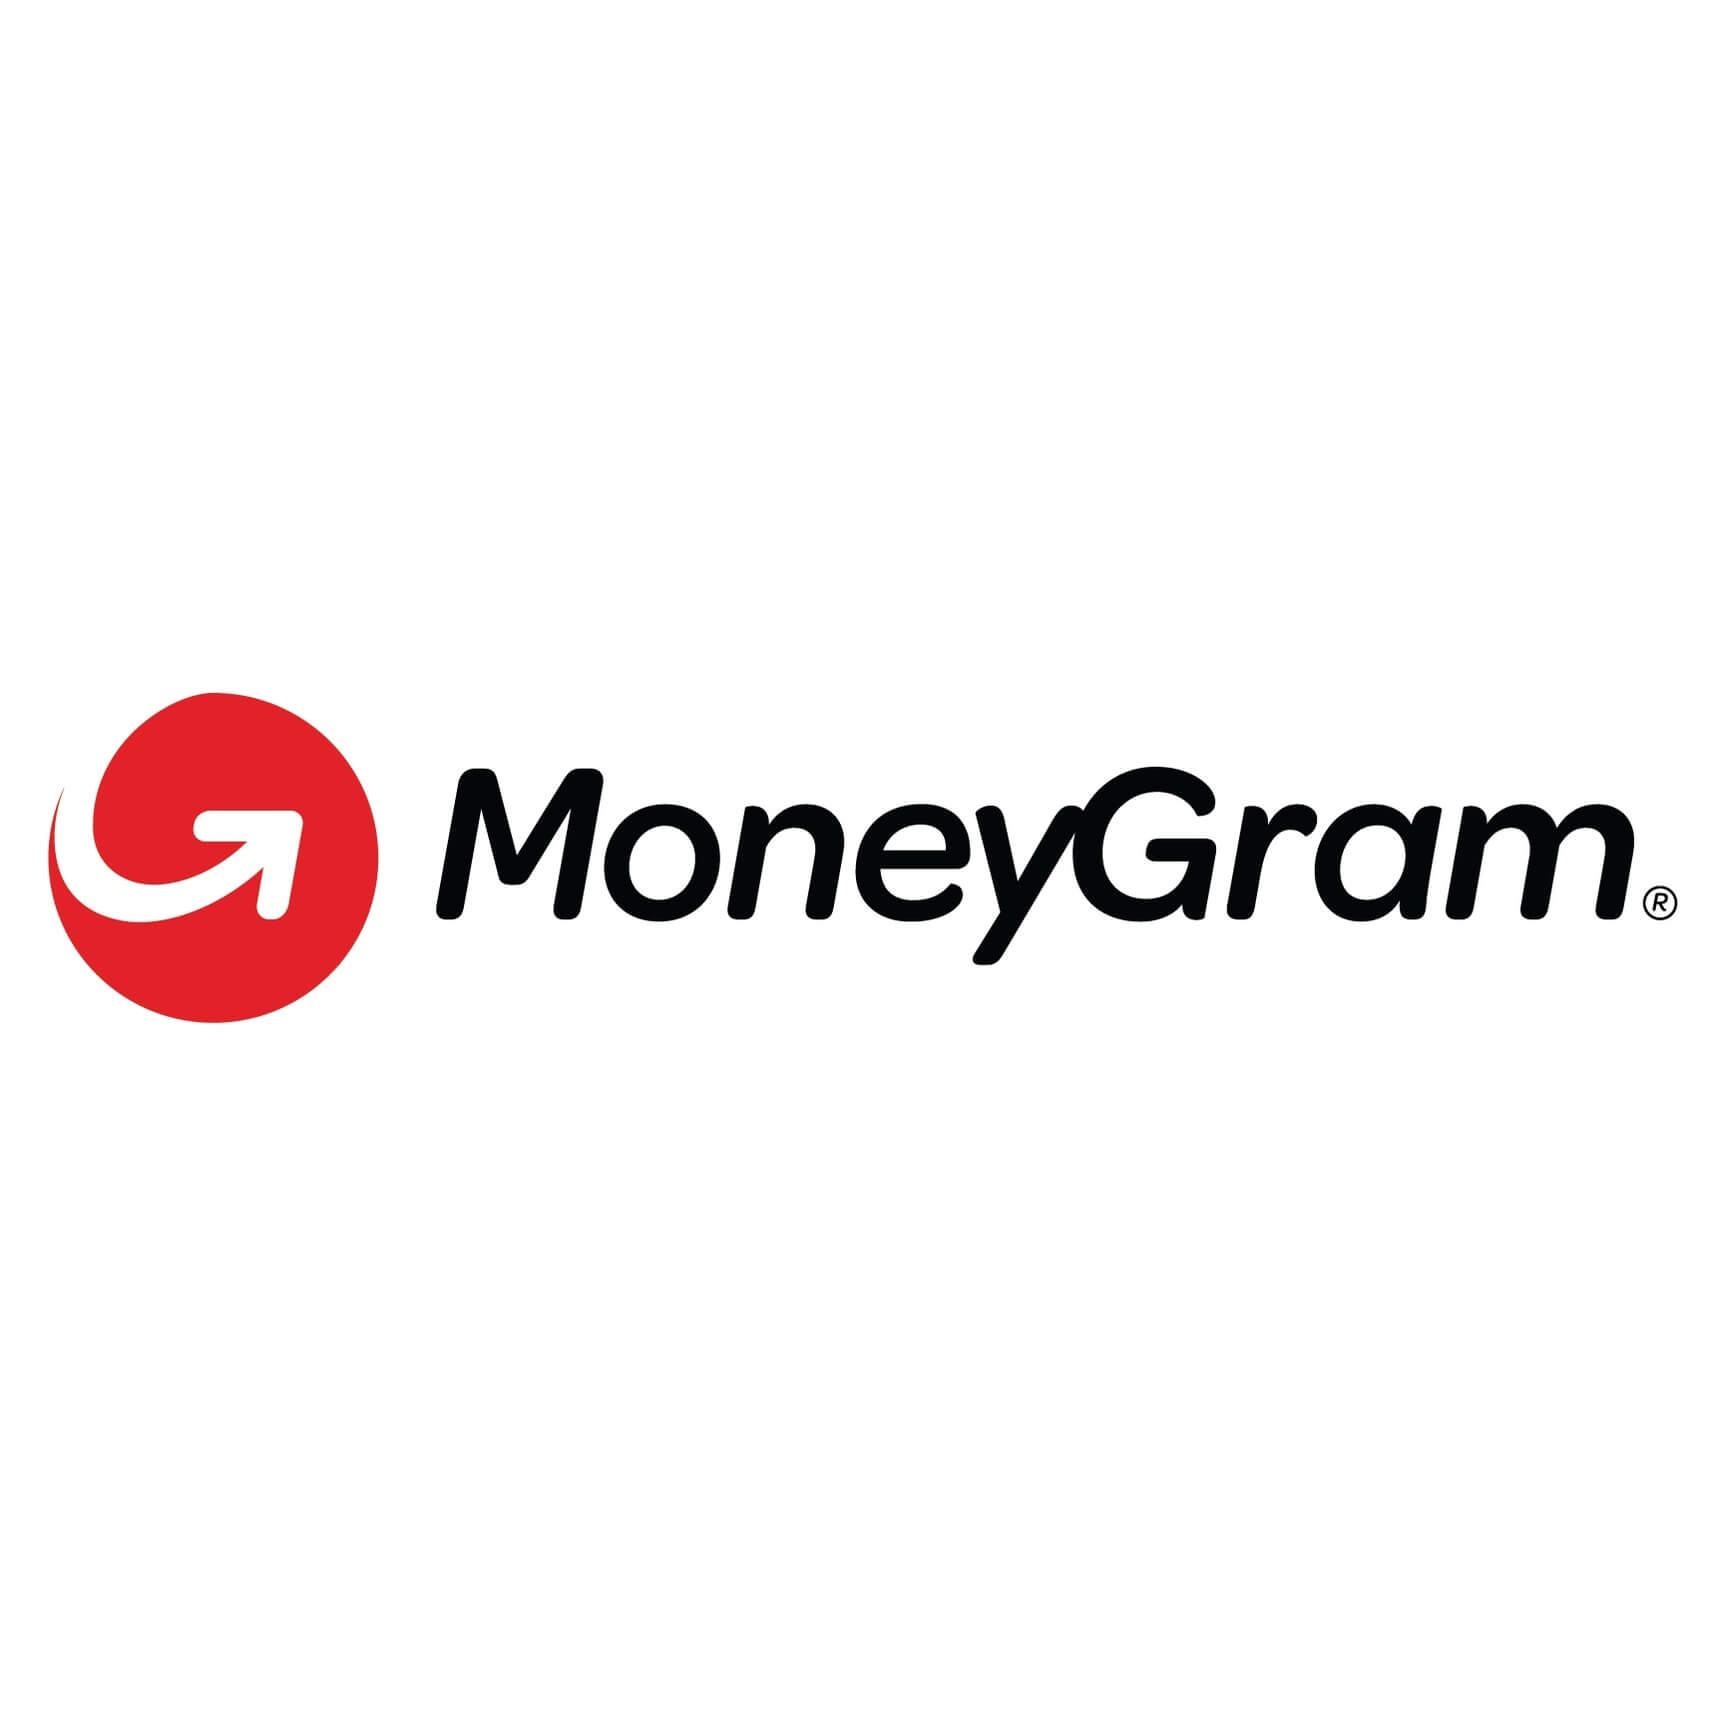 MoneyGram and XRP